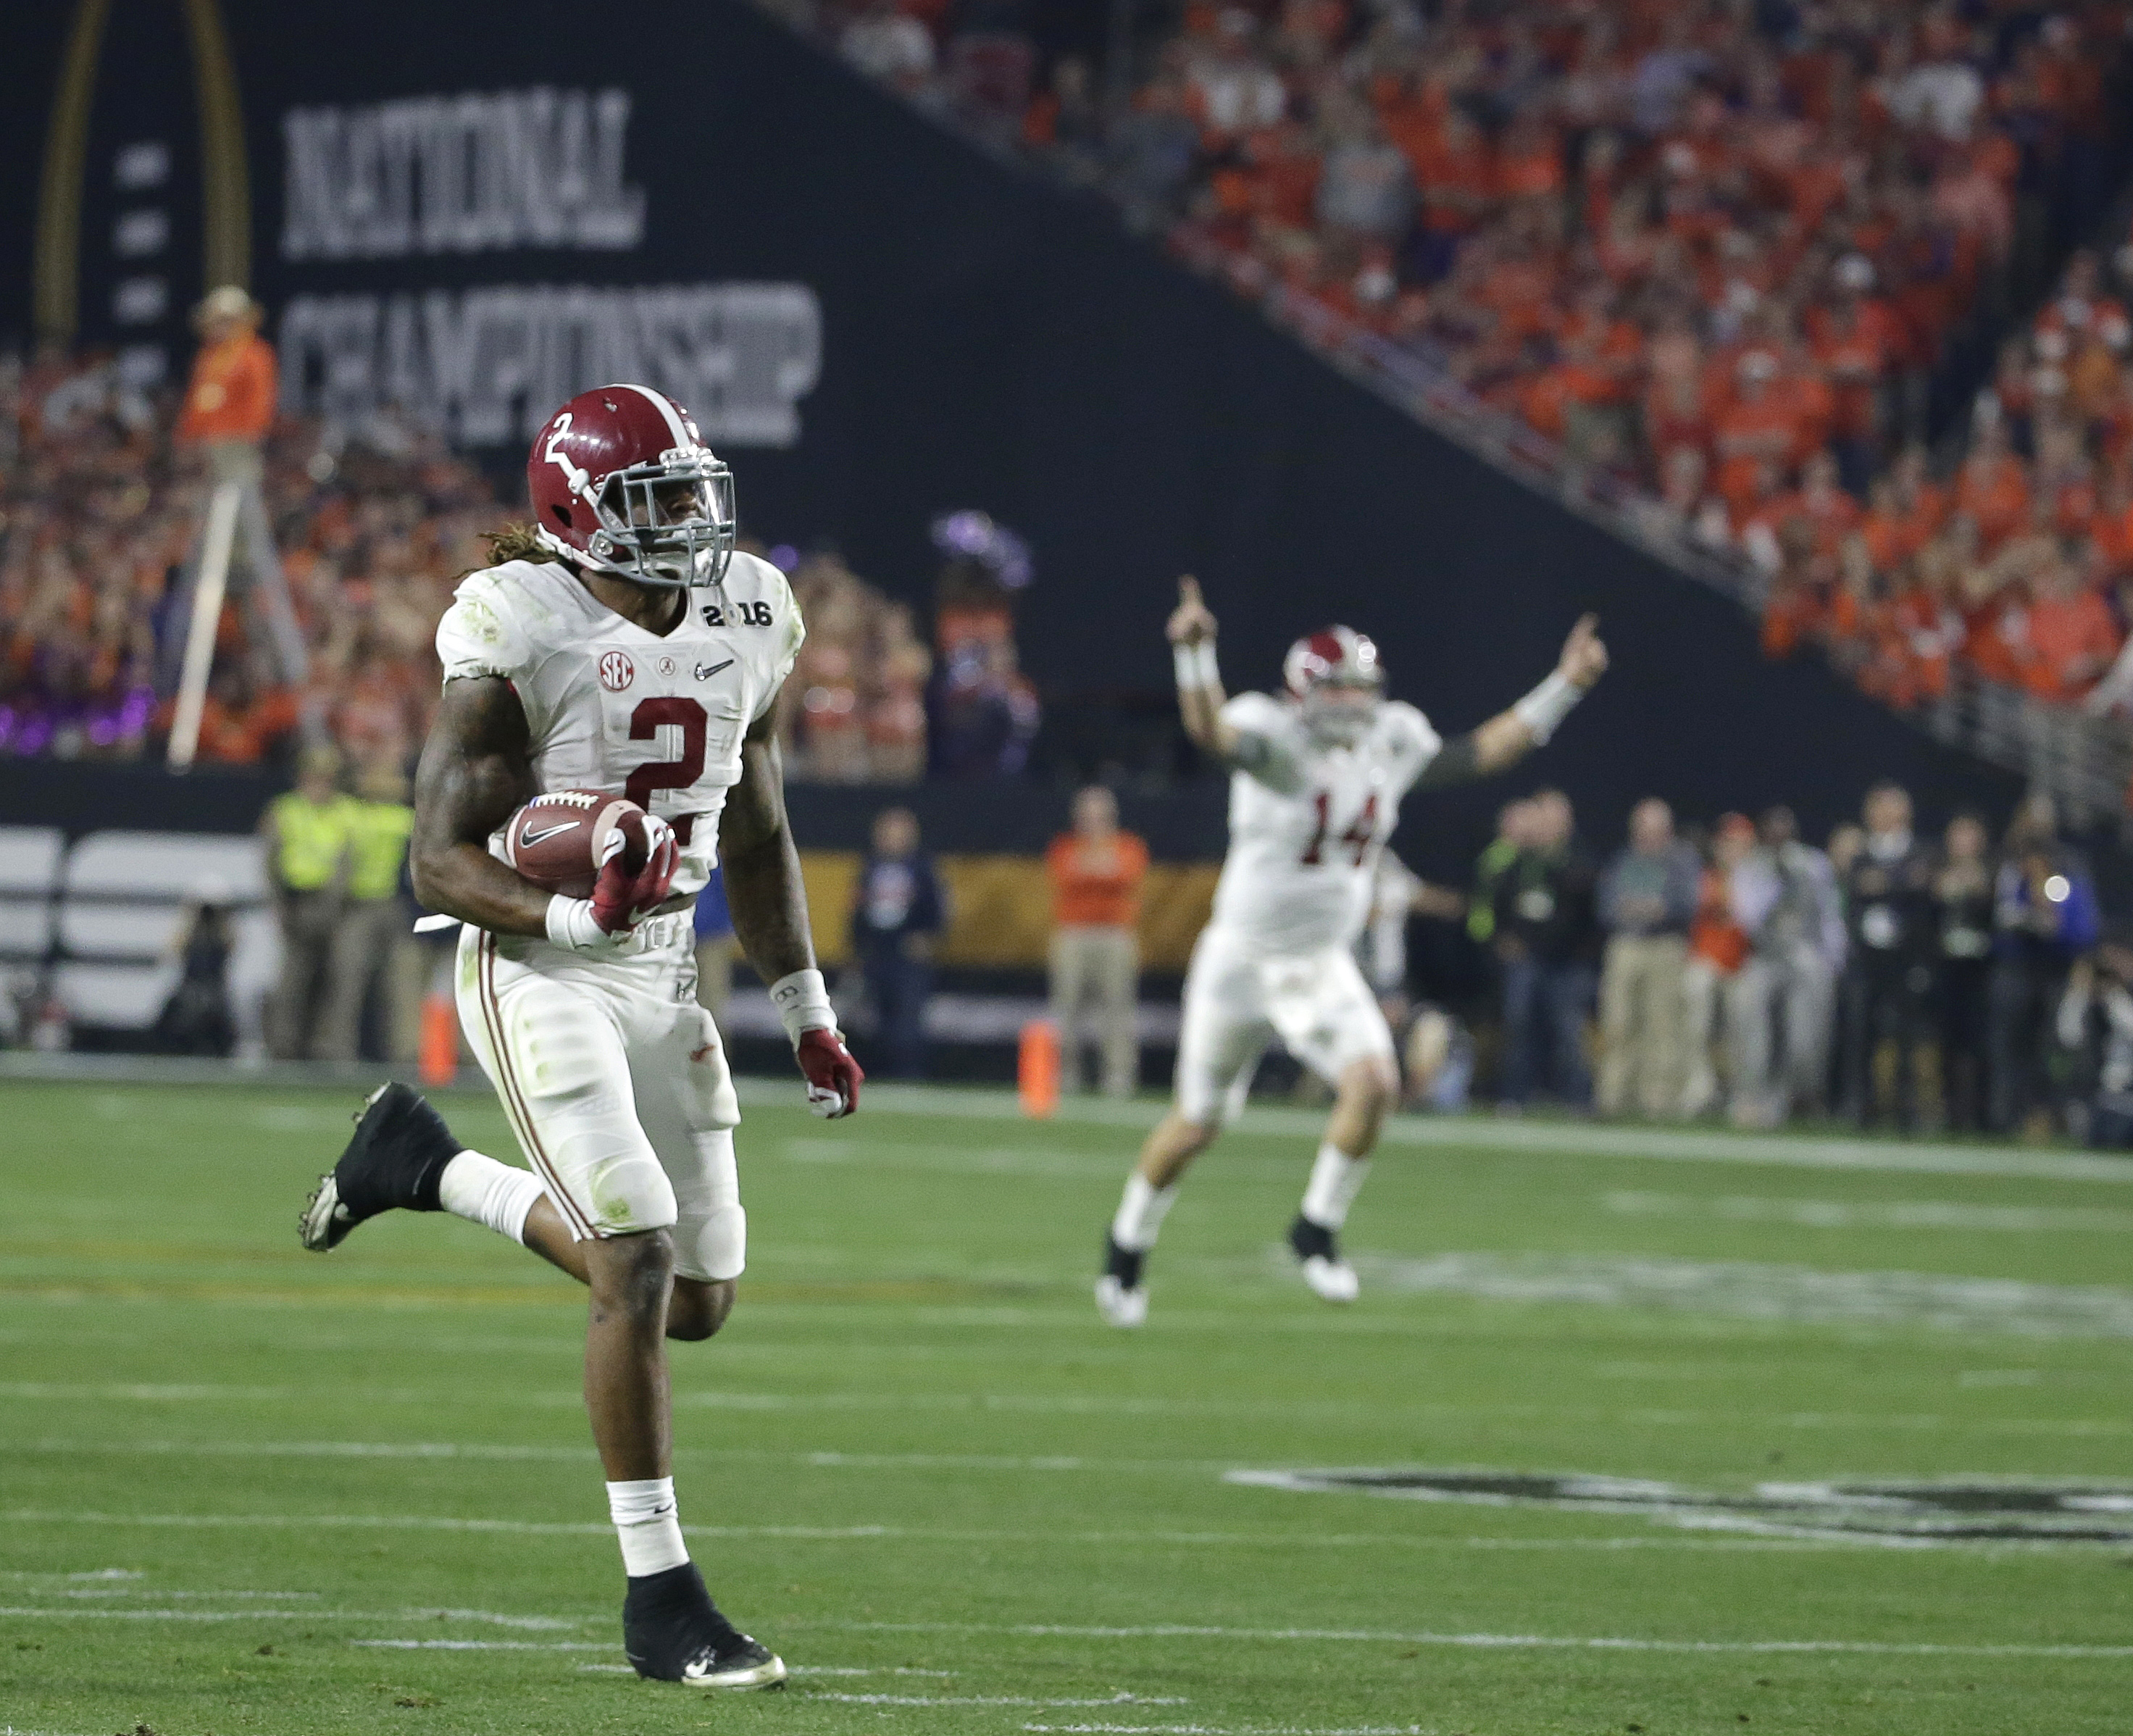 Alabama's Jake Coker (14) reacts as Derrick Henry (2) runs to the end zone during the first half of the NCAA college football playoff championship game Monday, Jan. 11, 2016, in Glendale, Ariz. (AP Photo/Chris Carlson)